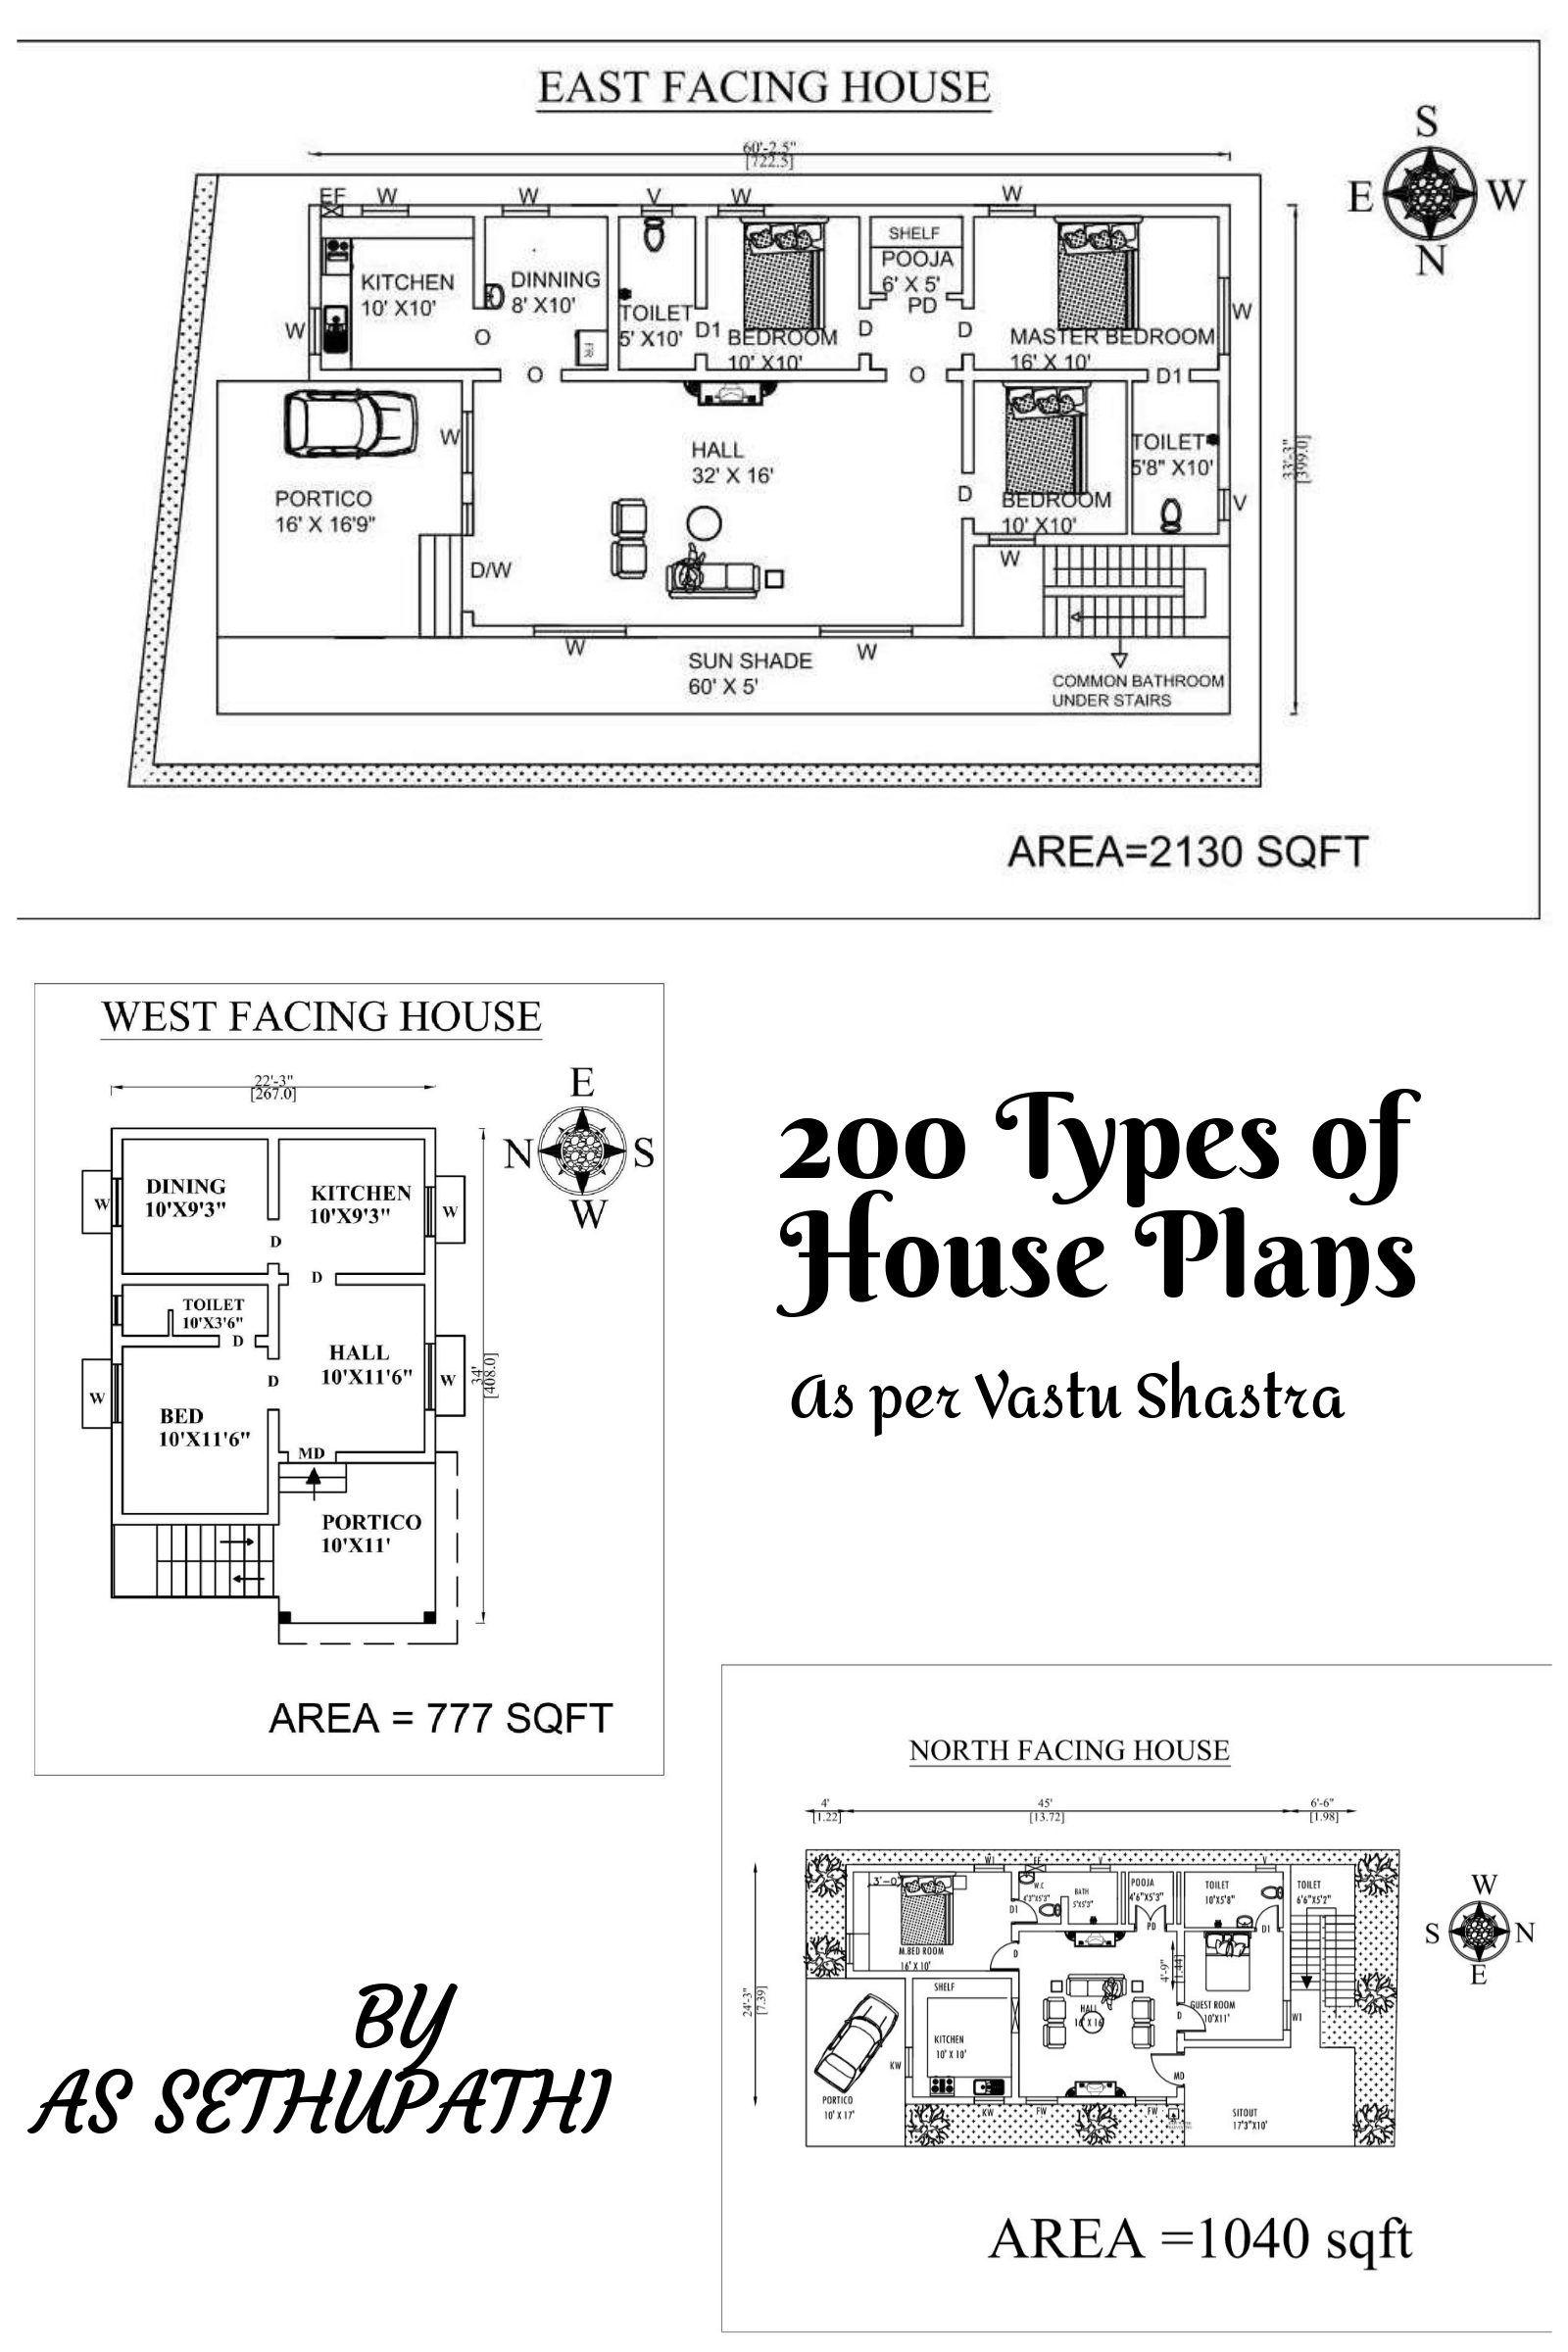 200 Types of House Plans as per Vastu Shastra, an Ebook by AS Sethu on india home design, beauty home design, interior home design, lighting home design, modern home design, architect home design, art home design, feng shui home design, construction home design, furniture home design, floor plan home design, love home design, exterior home design, inspiration home design, unique home design, future home design,